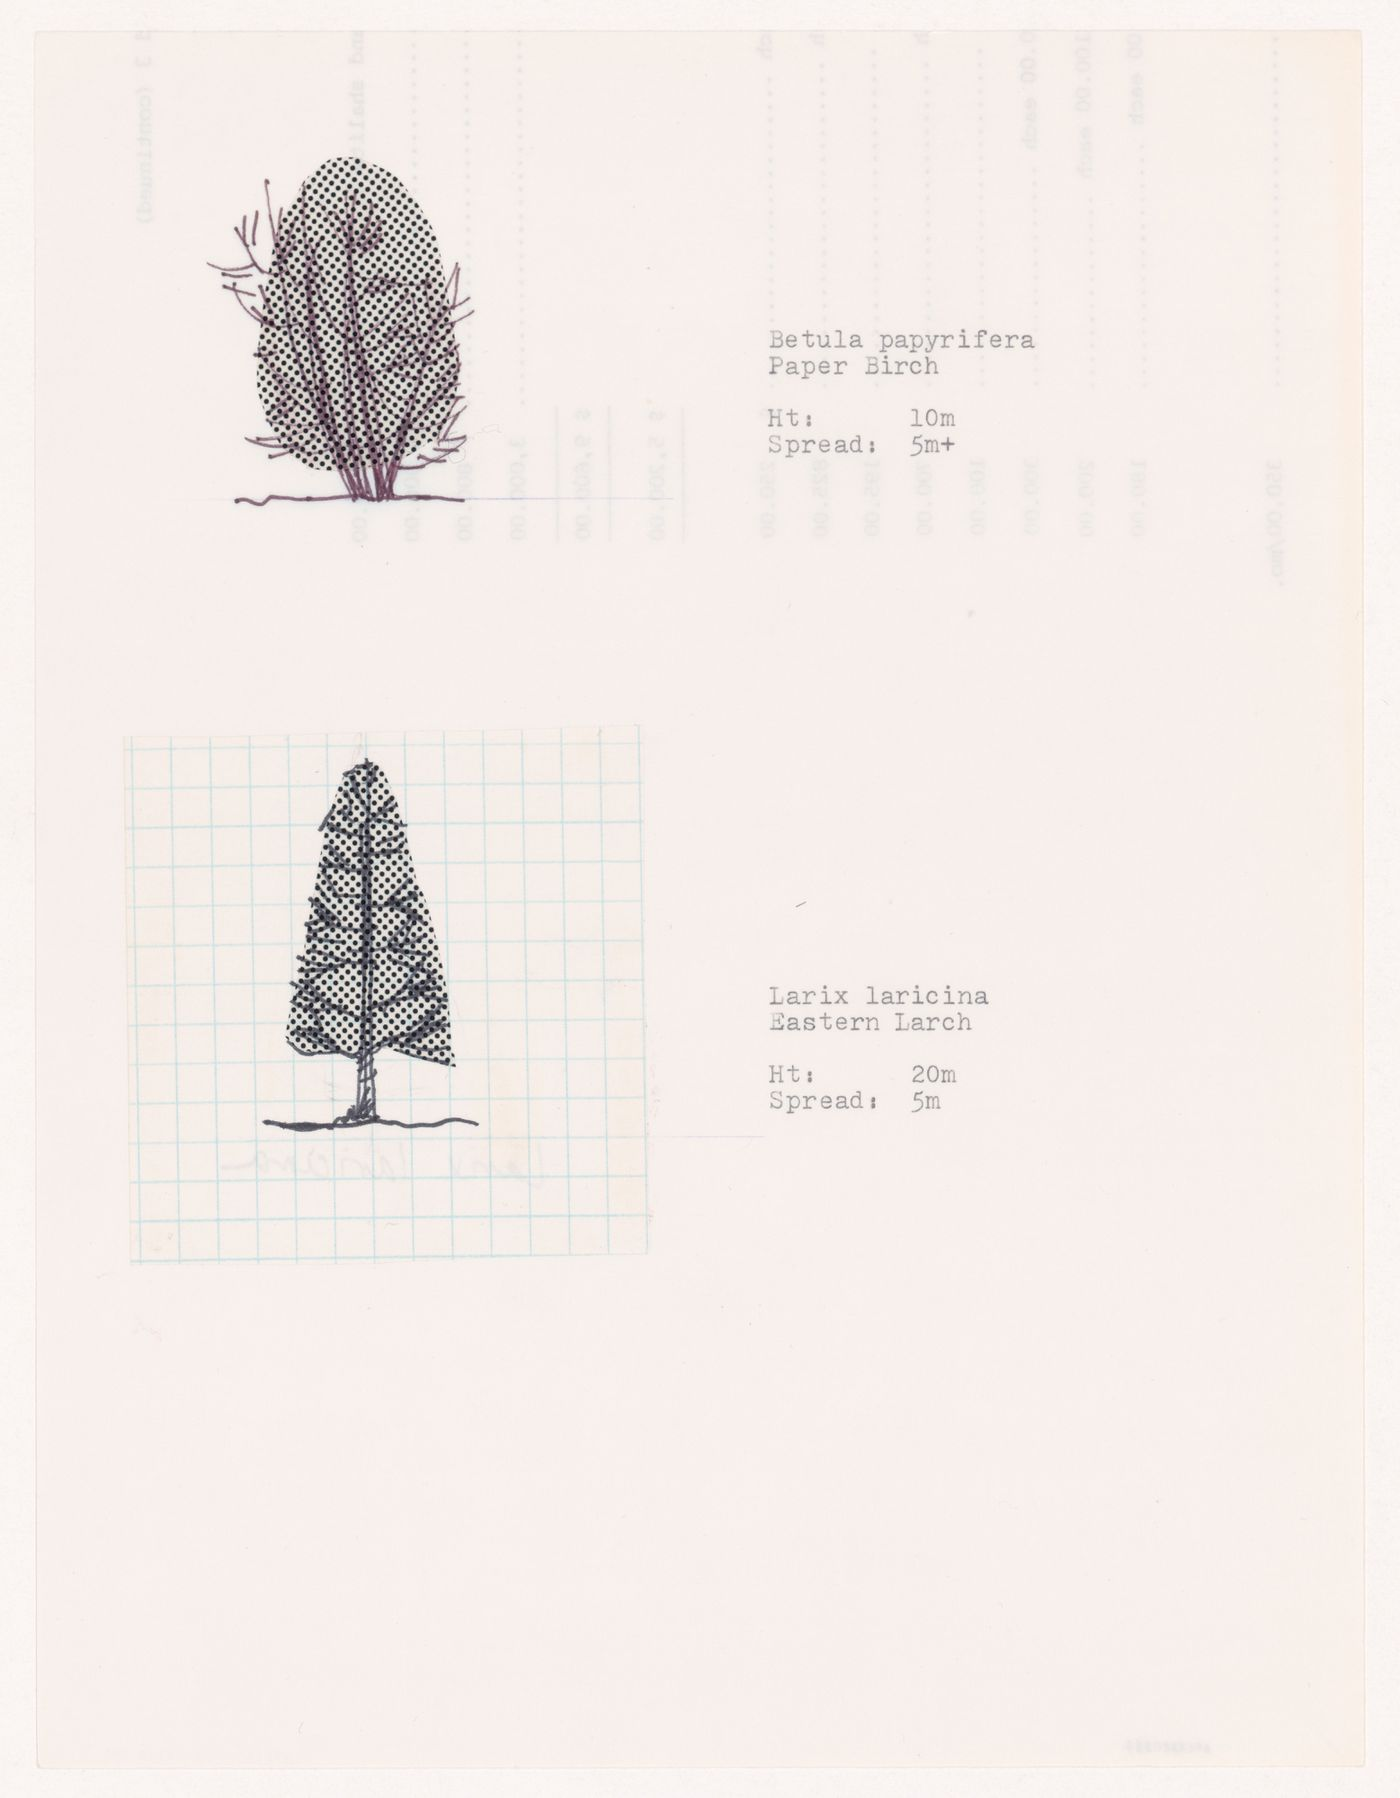 Plant specifications with illustration of specimens for National Gallery of Canada, Ottawa, Ontario